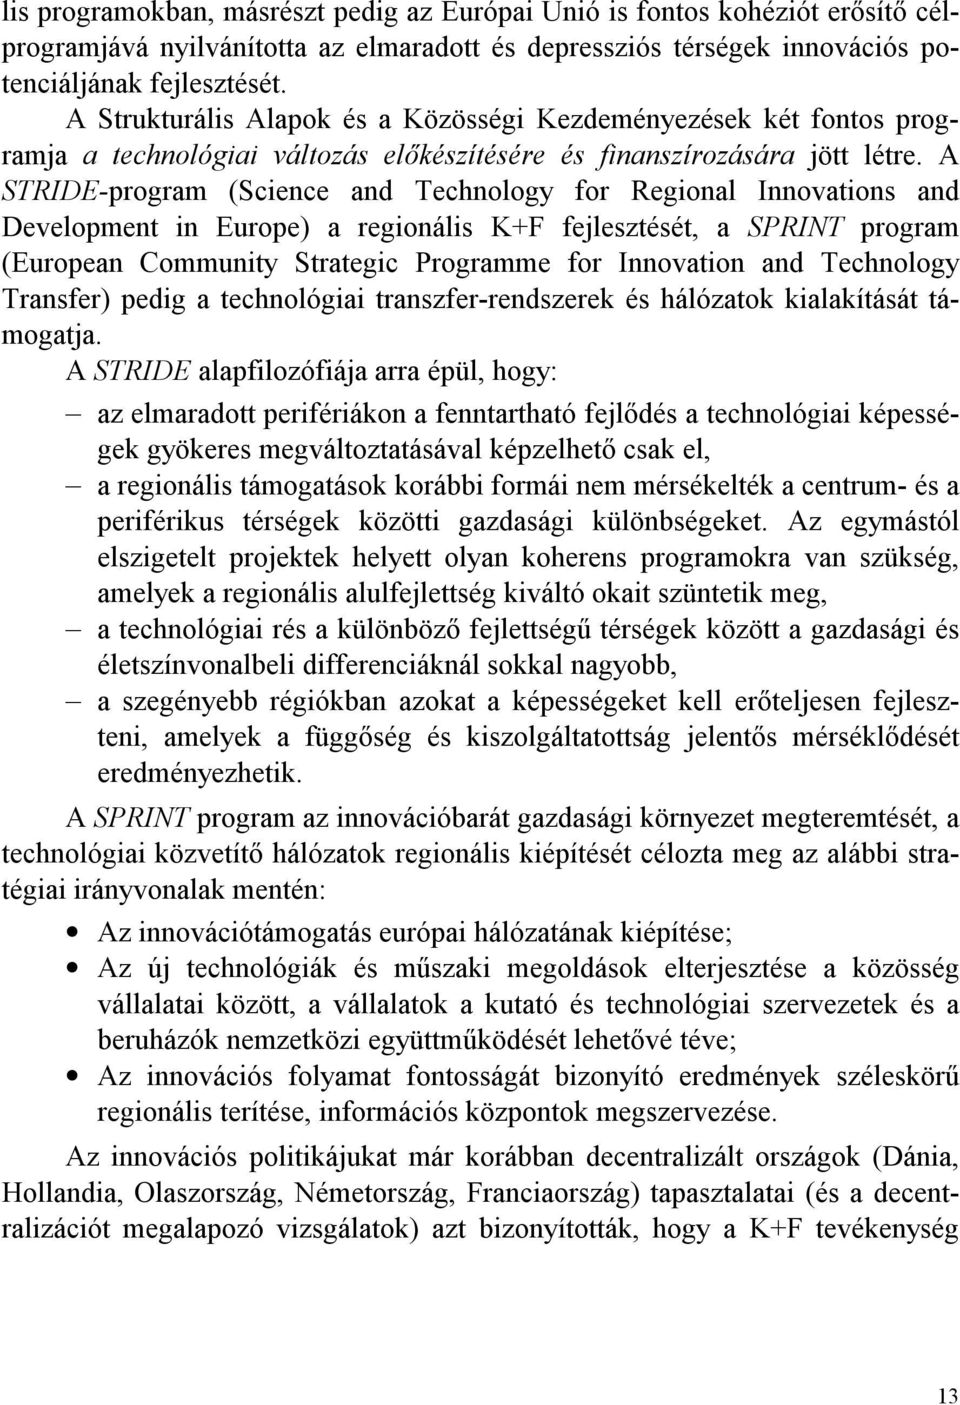 A STRIDE-program (Science and Technology for Regional Innovations and Development in Europe) a regionális K+F fejlesztését, a SPRINT program (European Community Strategic Programme for Innovation and